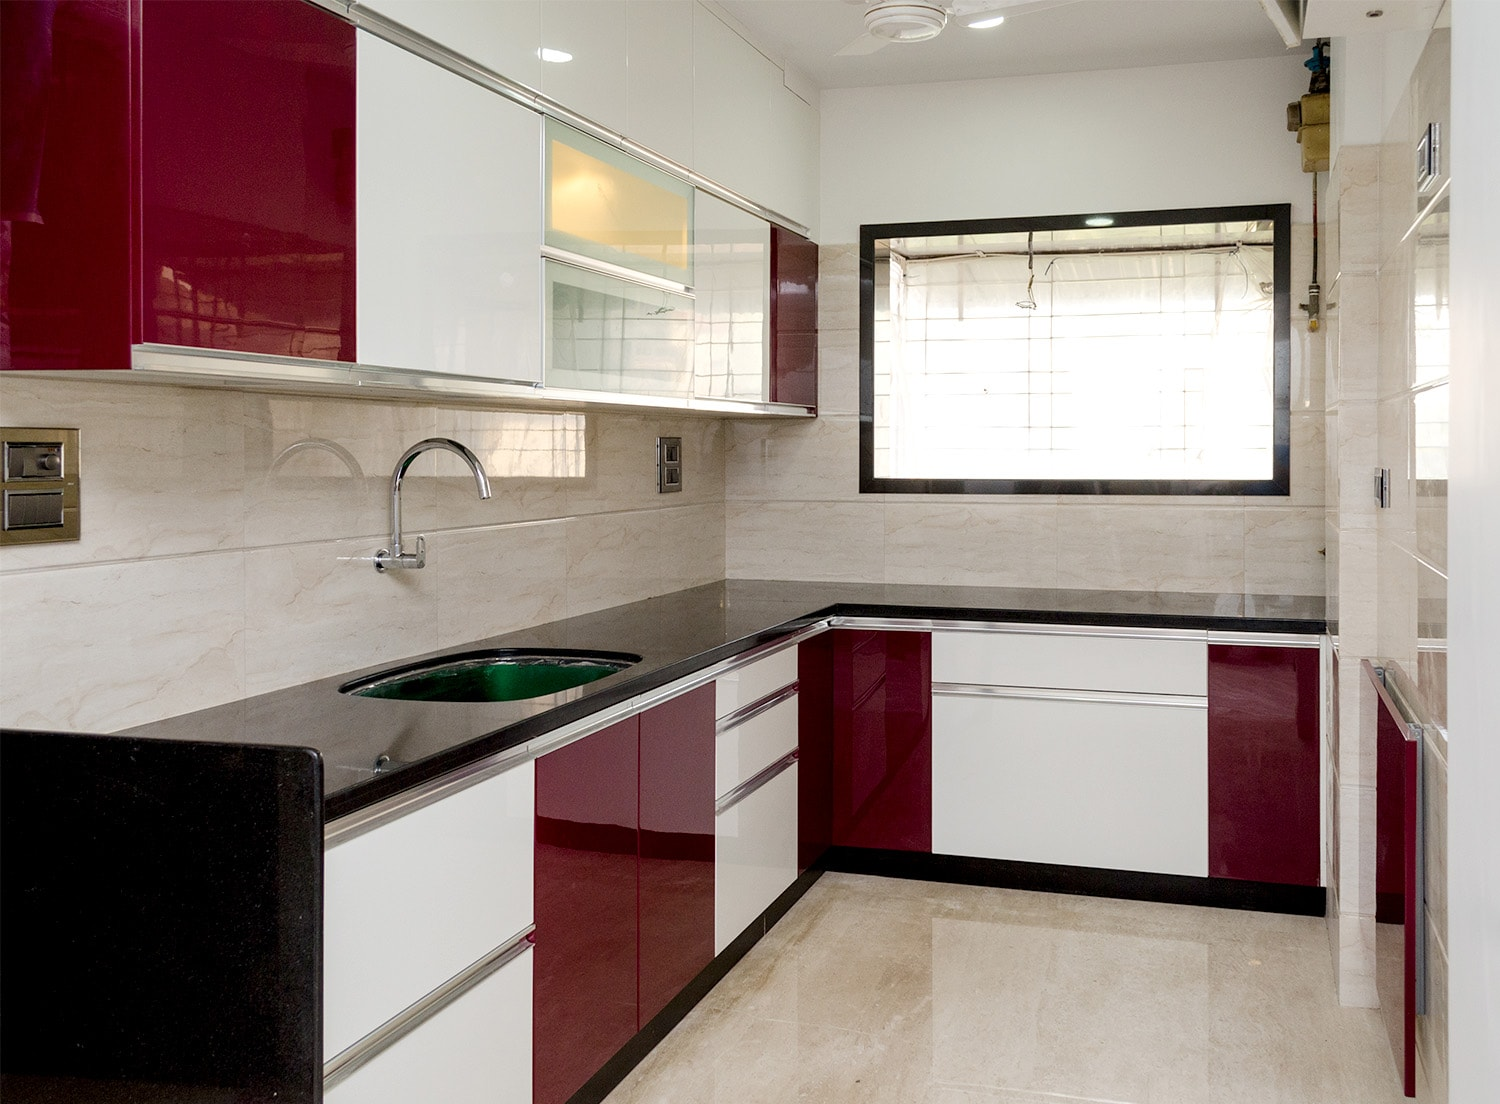 Kitchen Tiles Bangalore home interiorshomelane - modular kitchens, wardrobes, storage